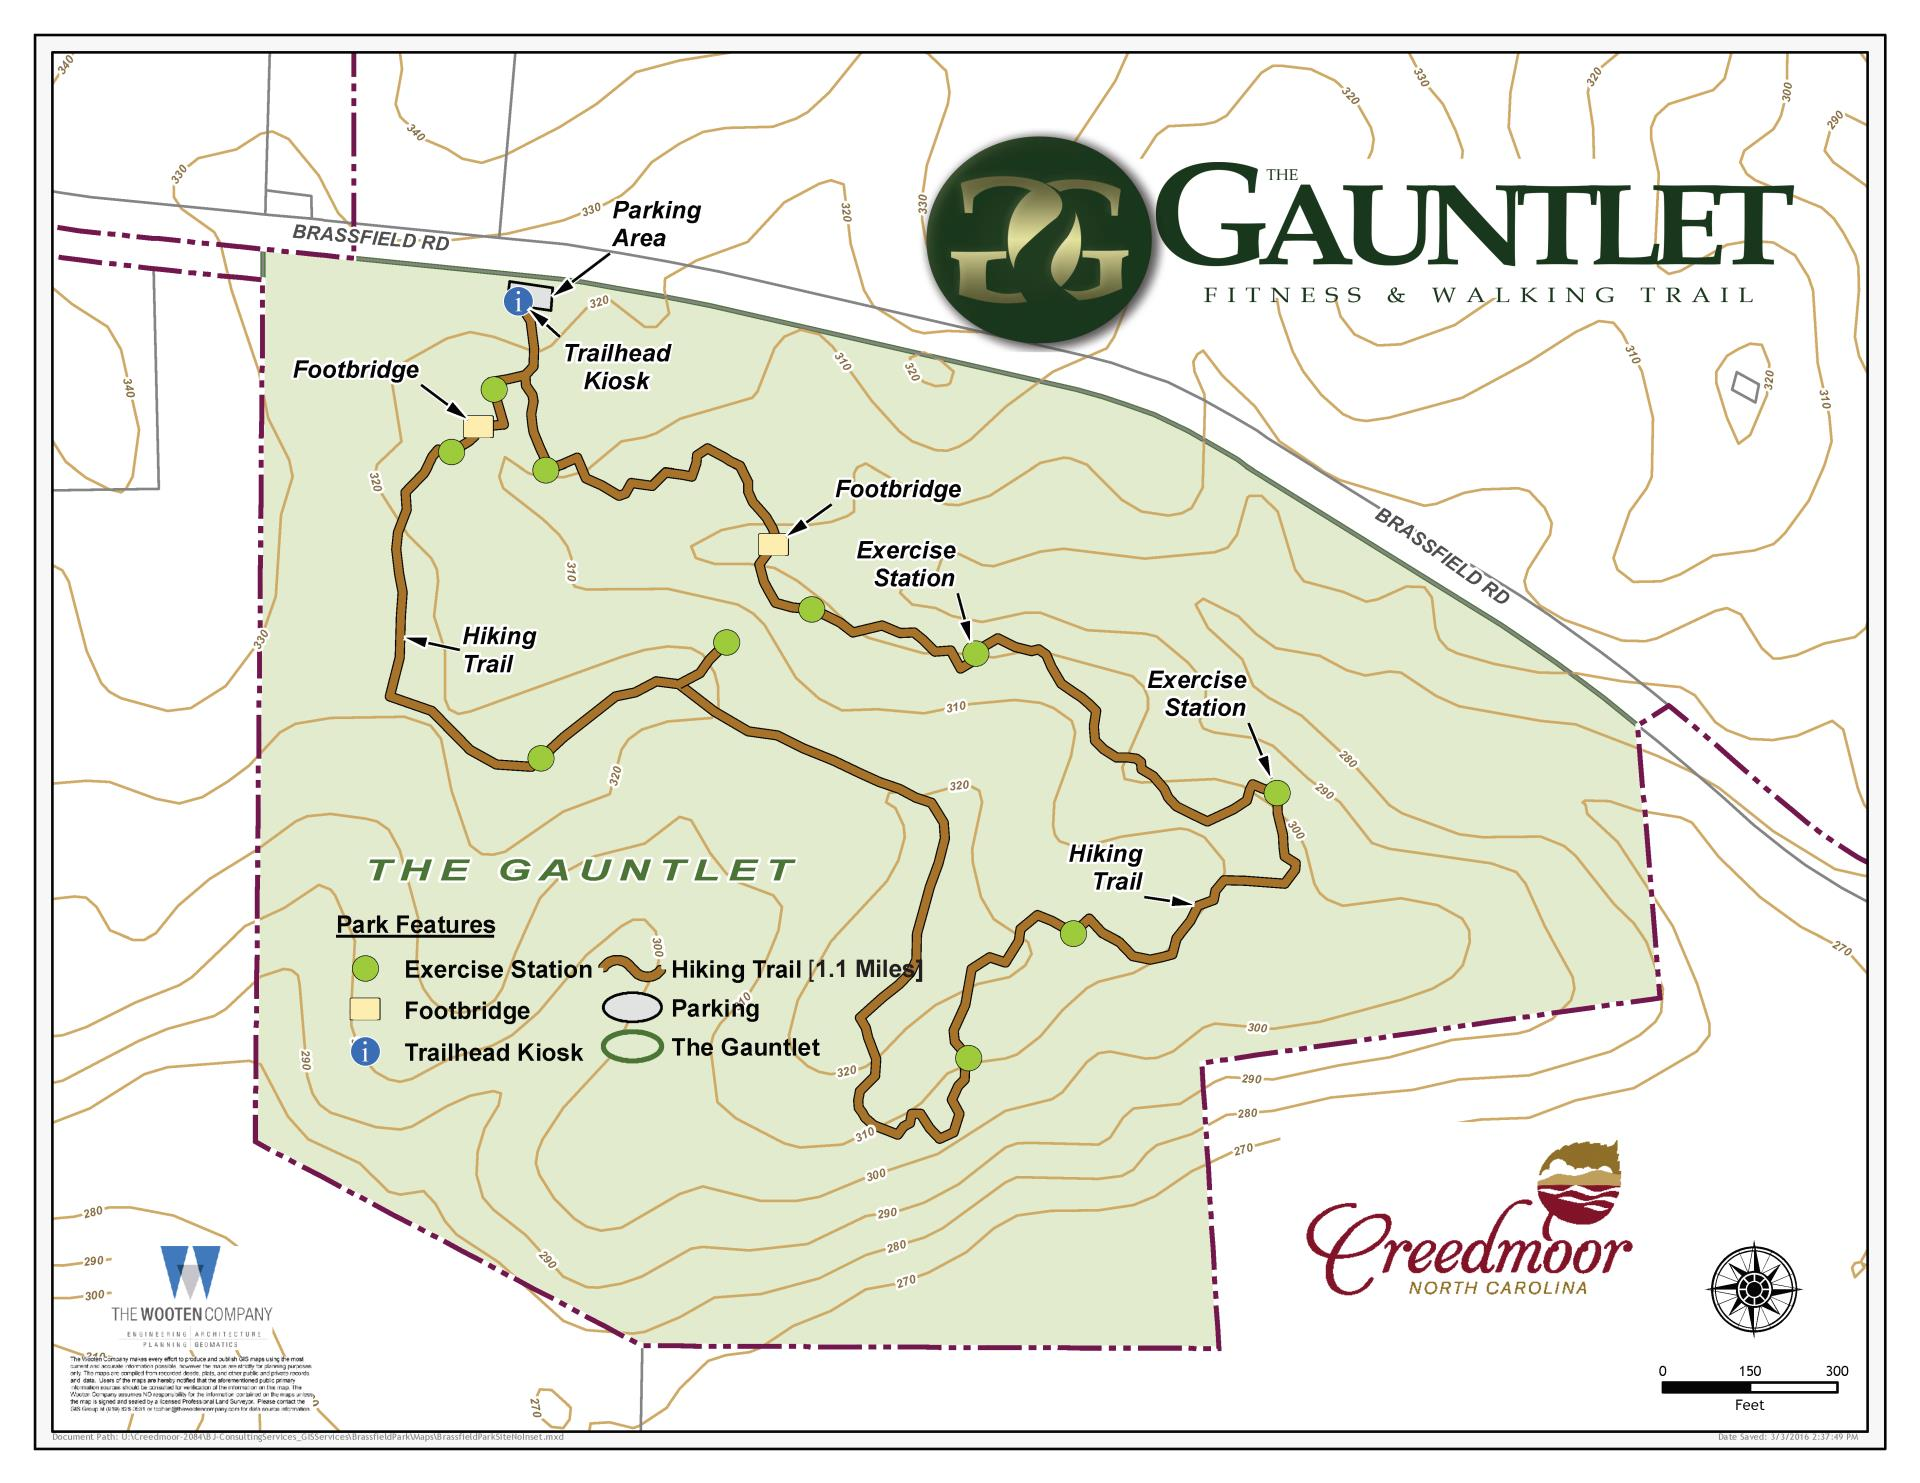 The Gauntlet Hiking Trail Map